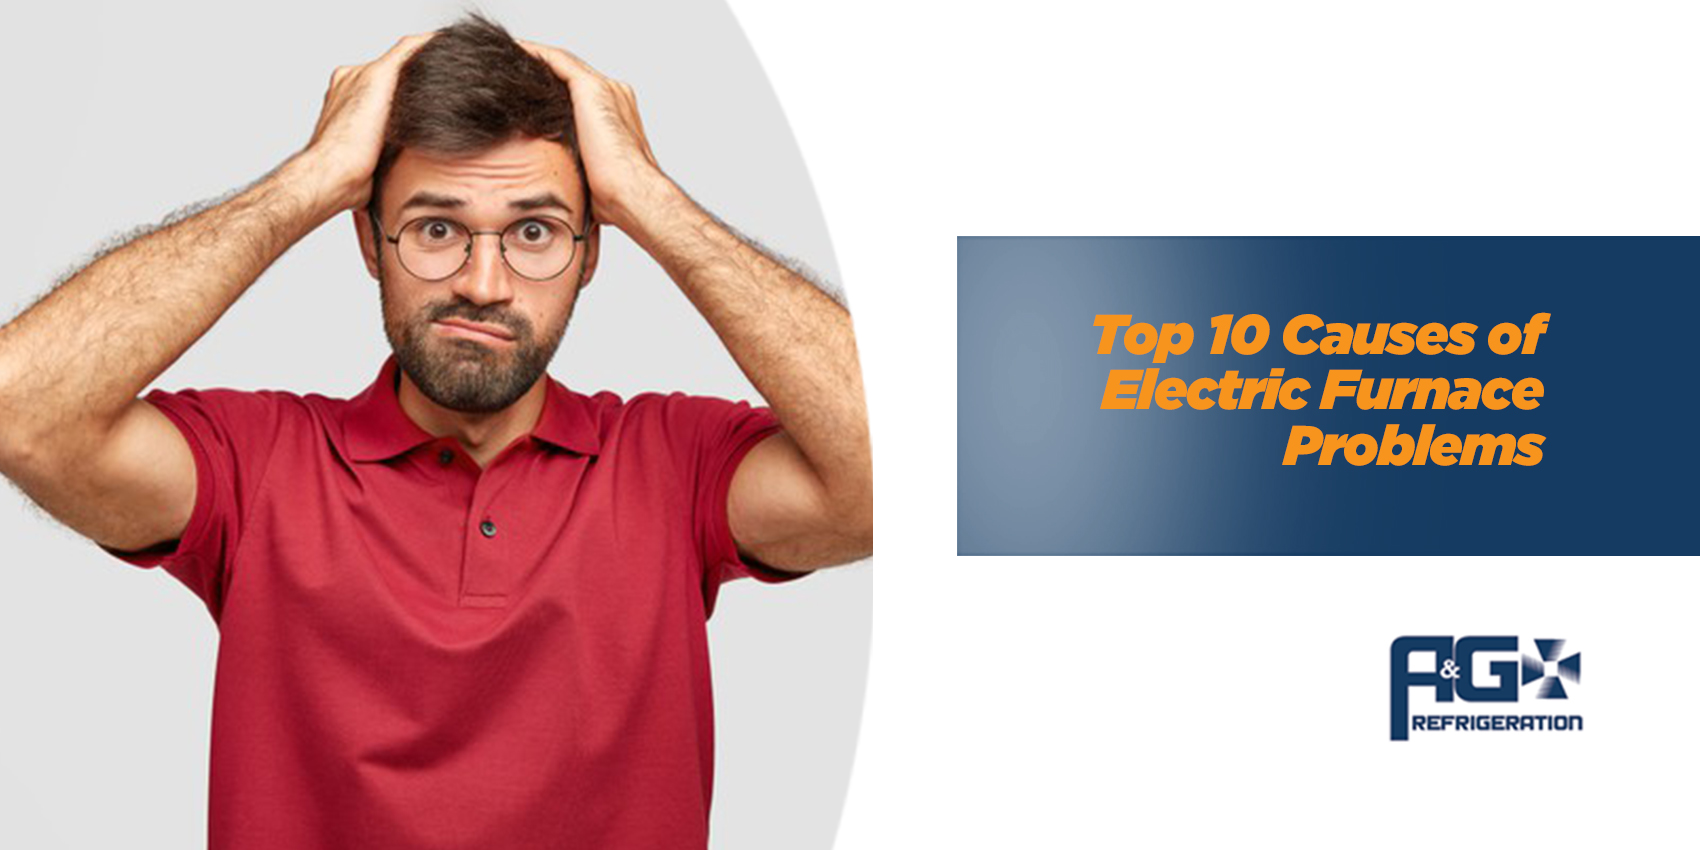 Top 10 Causes of Electric Furnace Problems